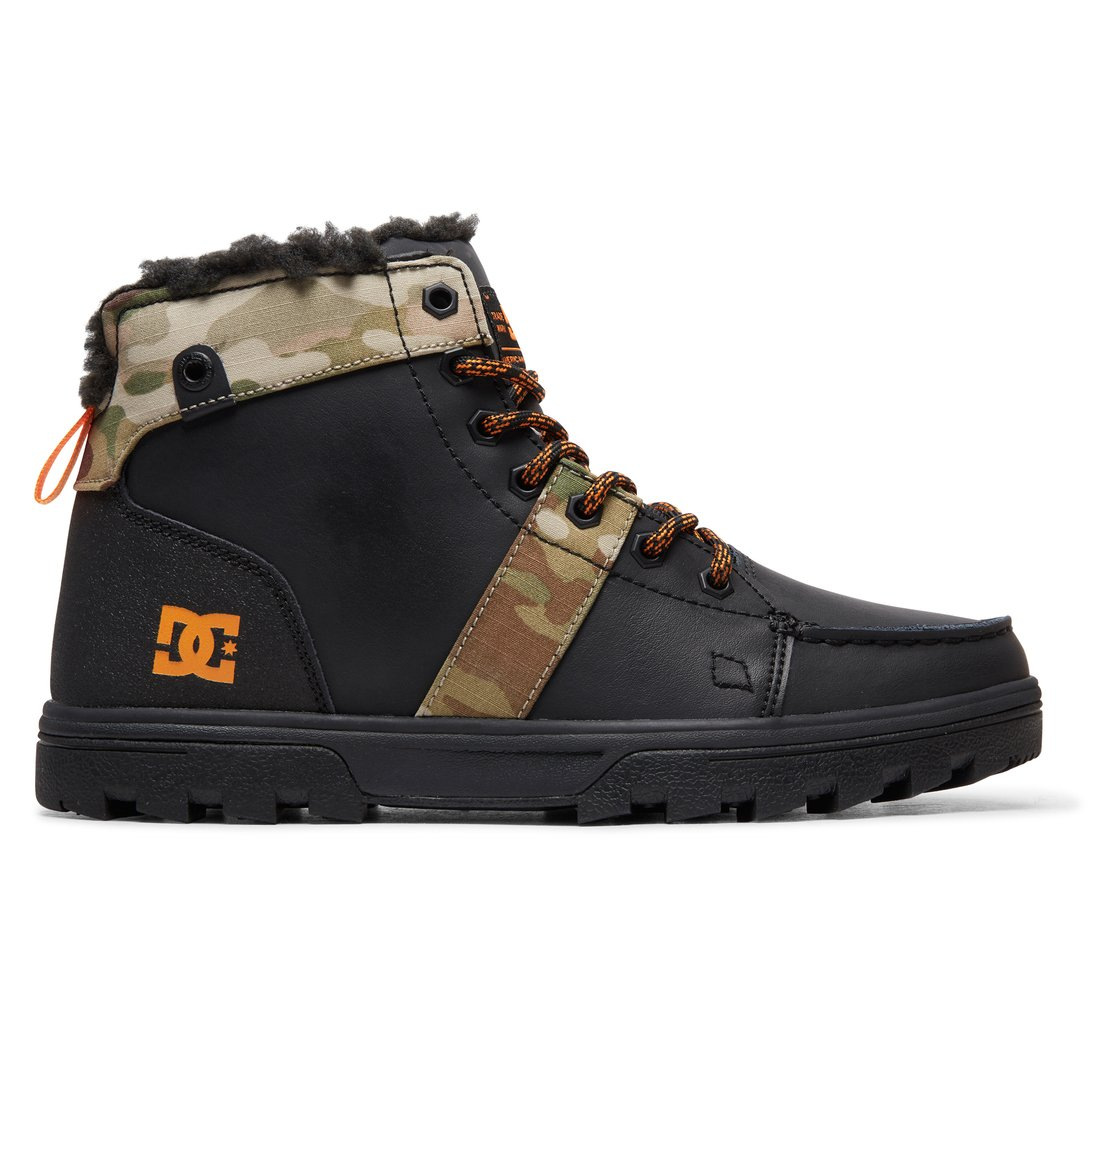 Woodland Lace Up Boots For Men 303241 Dc Shoes